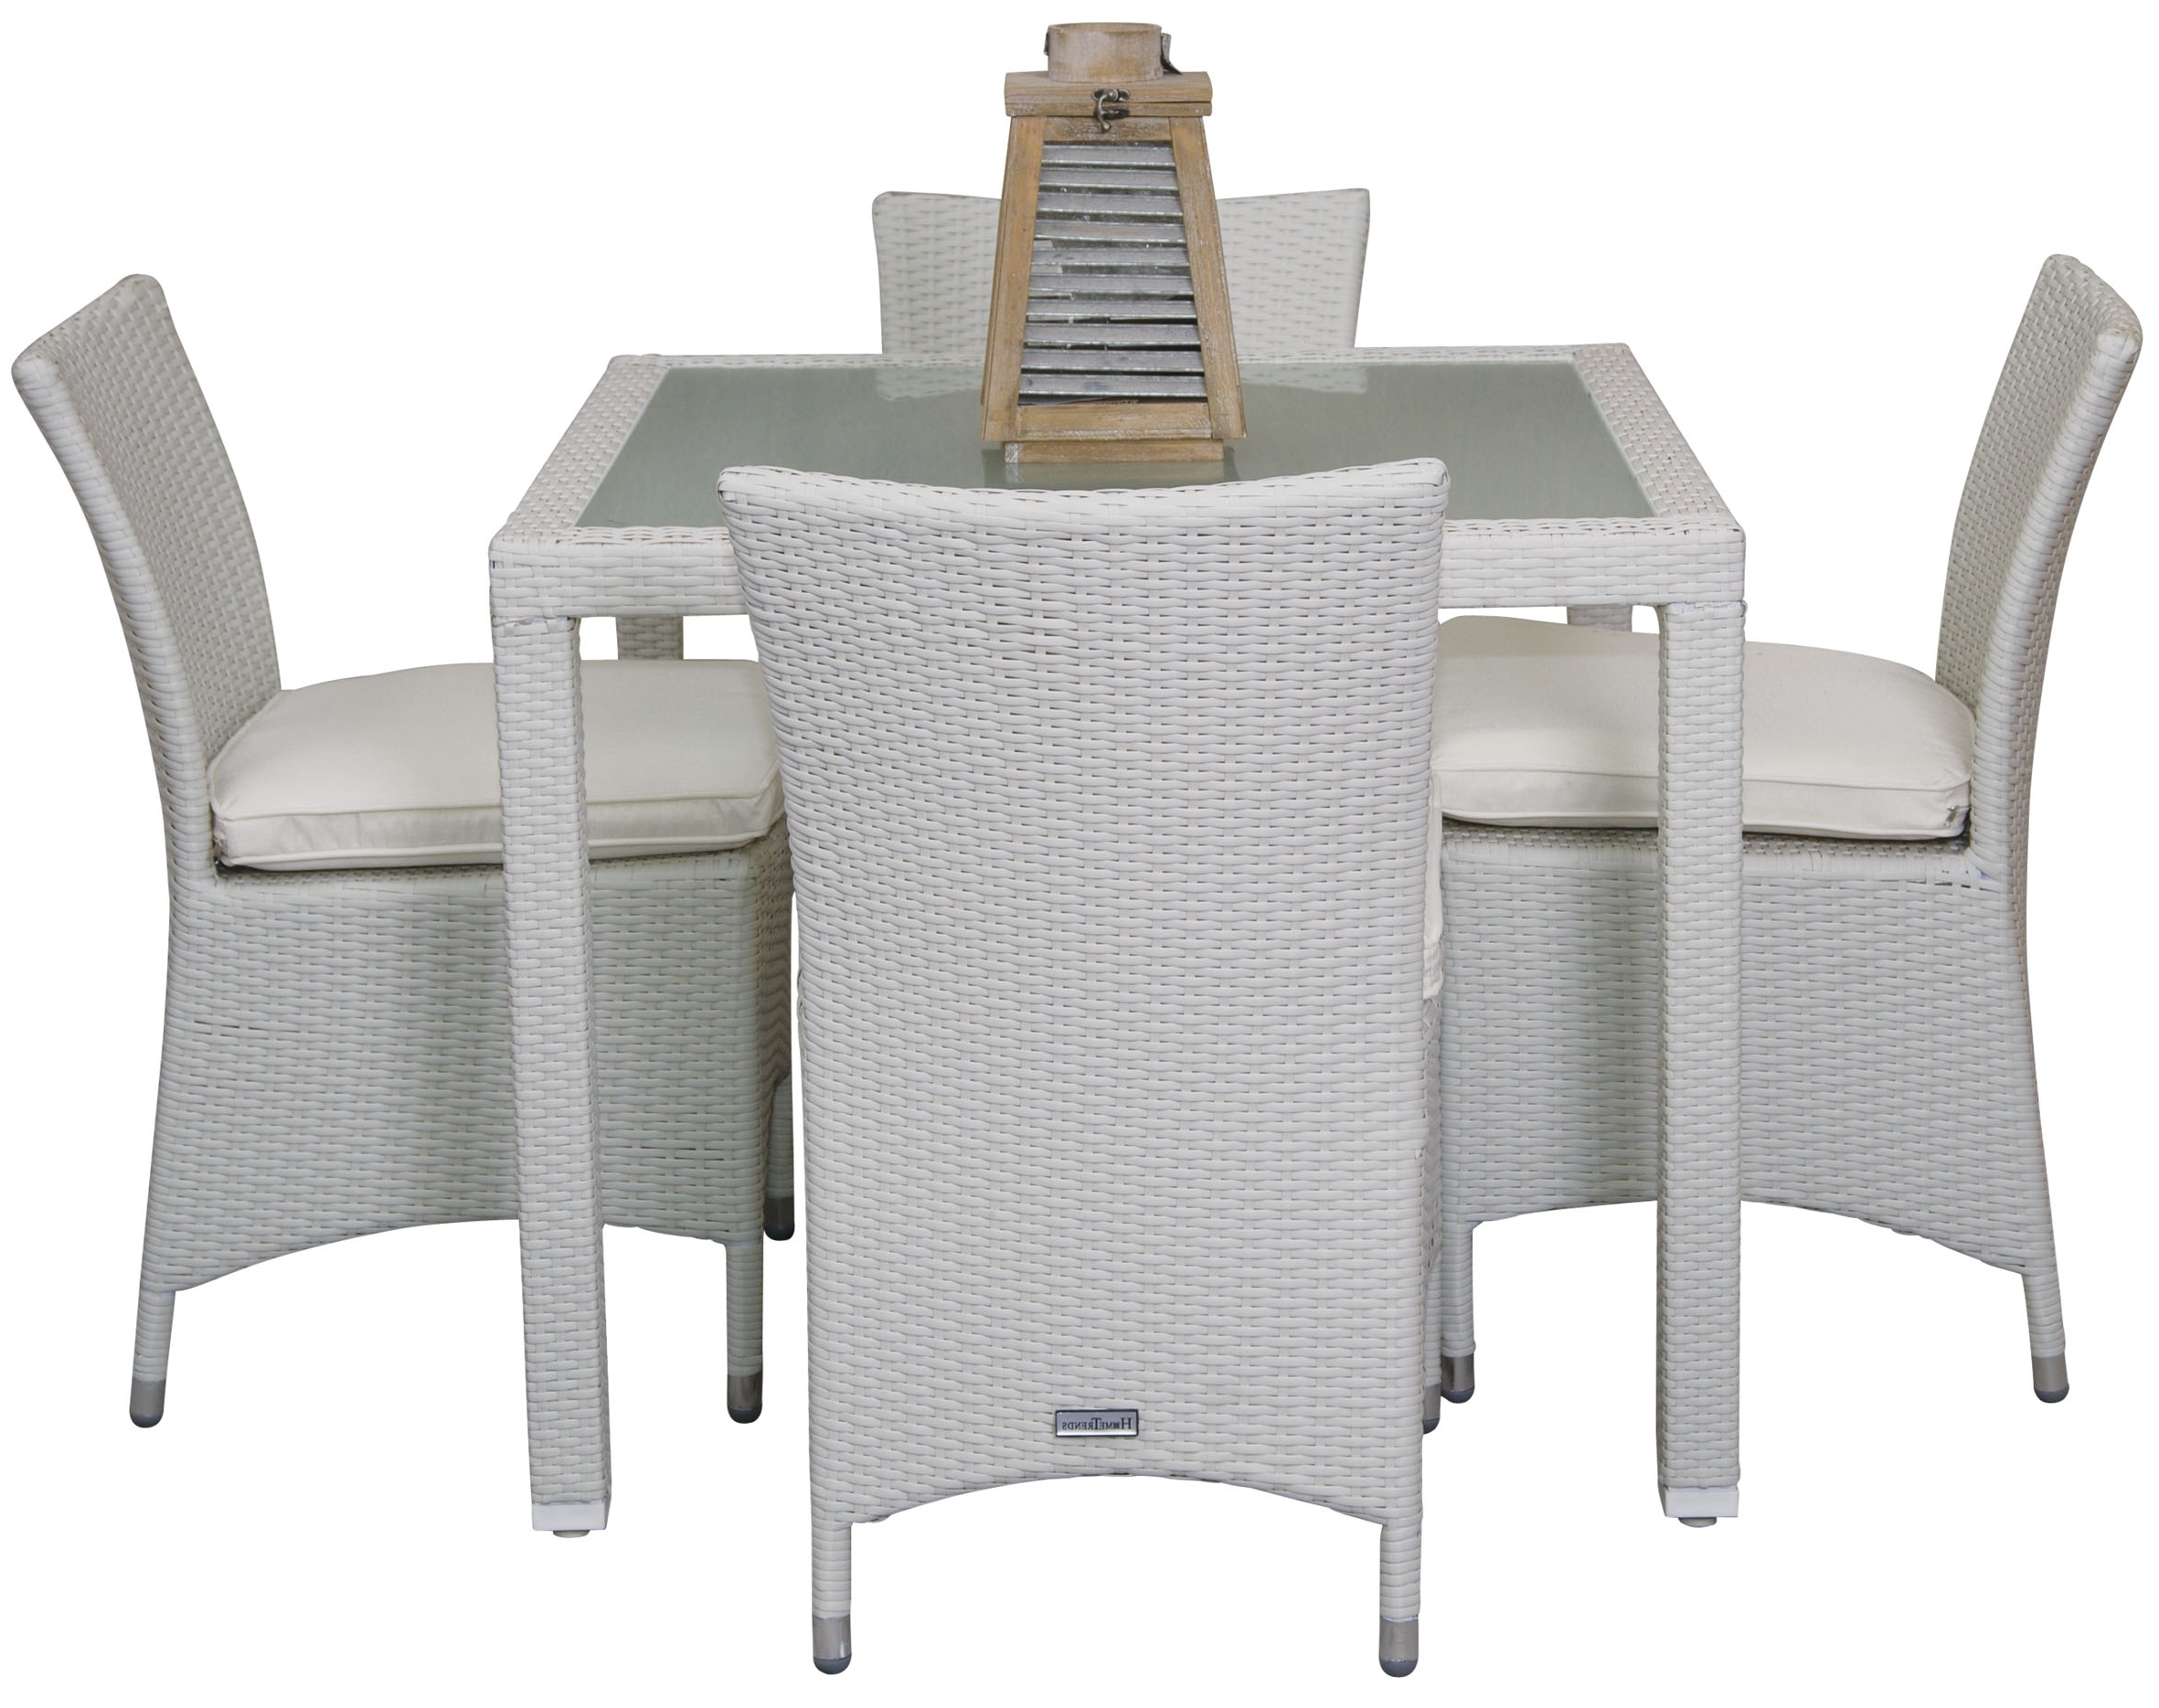 Rattan Dining Tables For Trendy Rattan Dining Table With Tempered Glass – Hometrends Home & Garden (View 11 of 25)